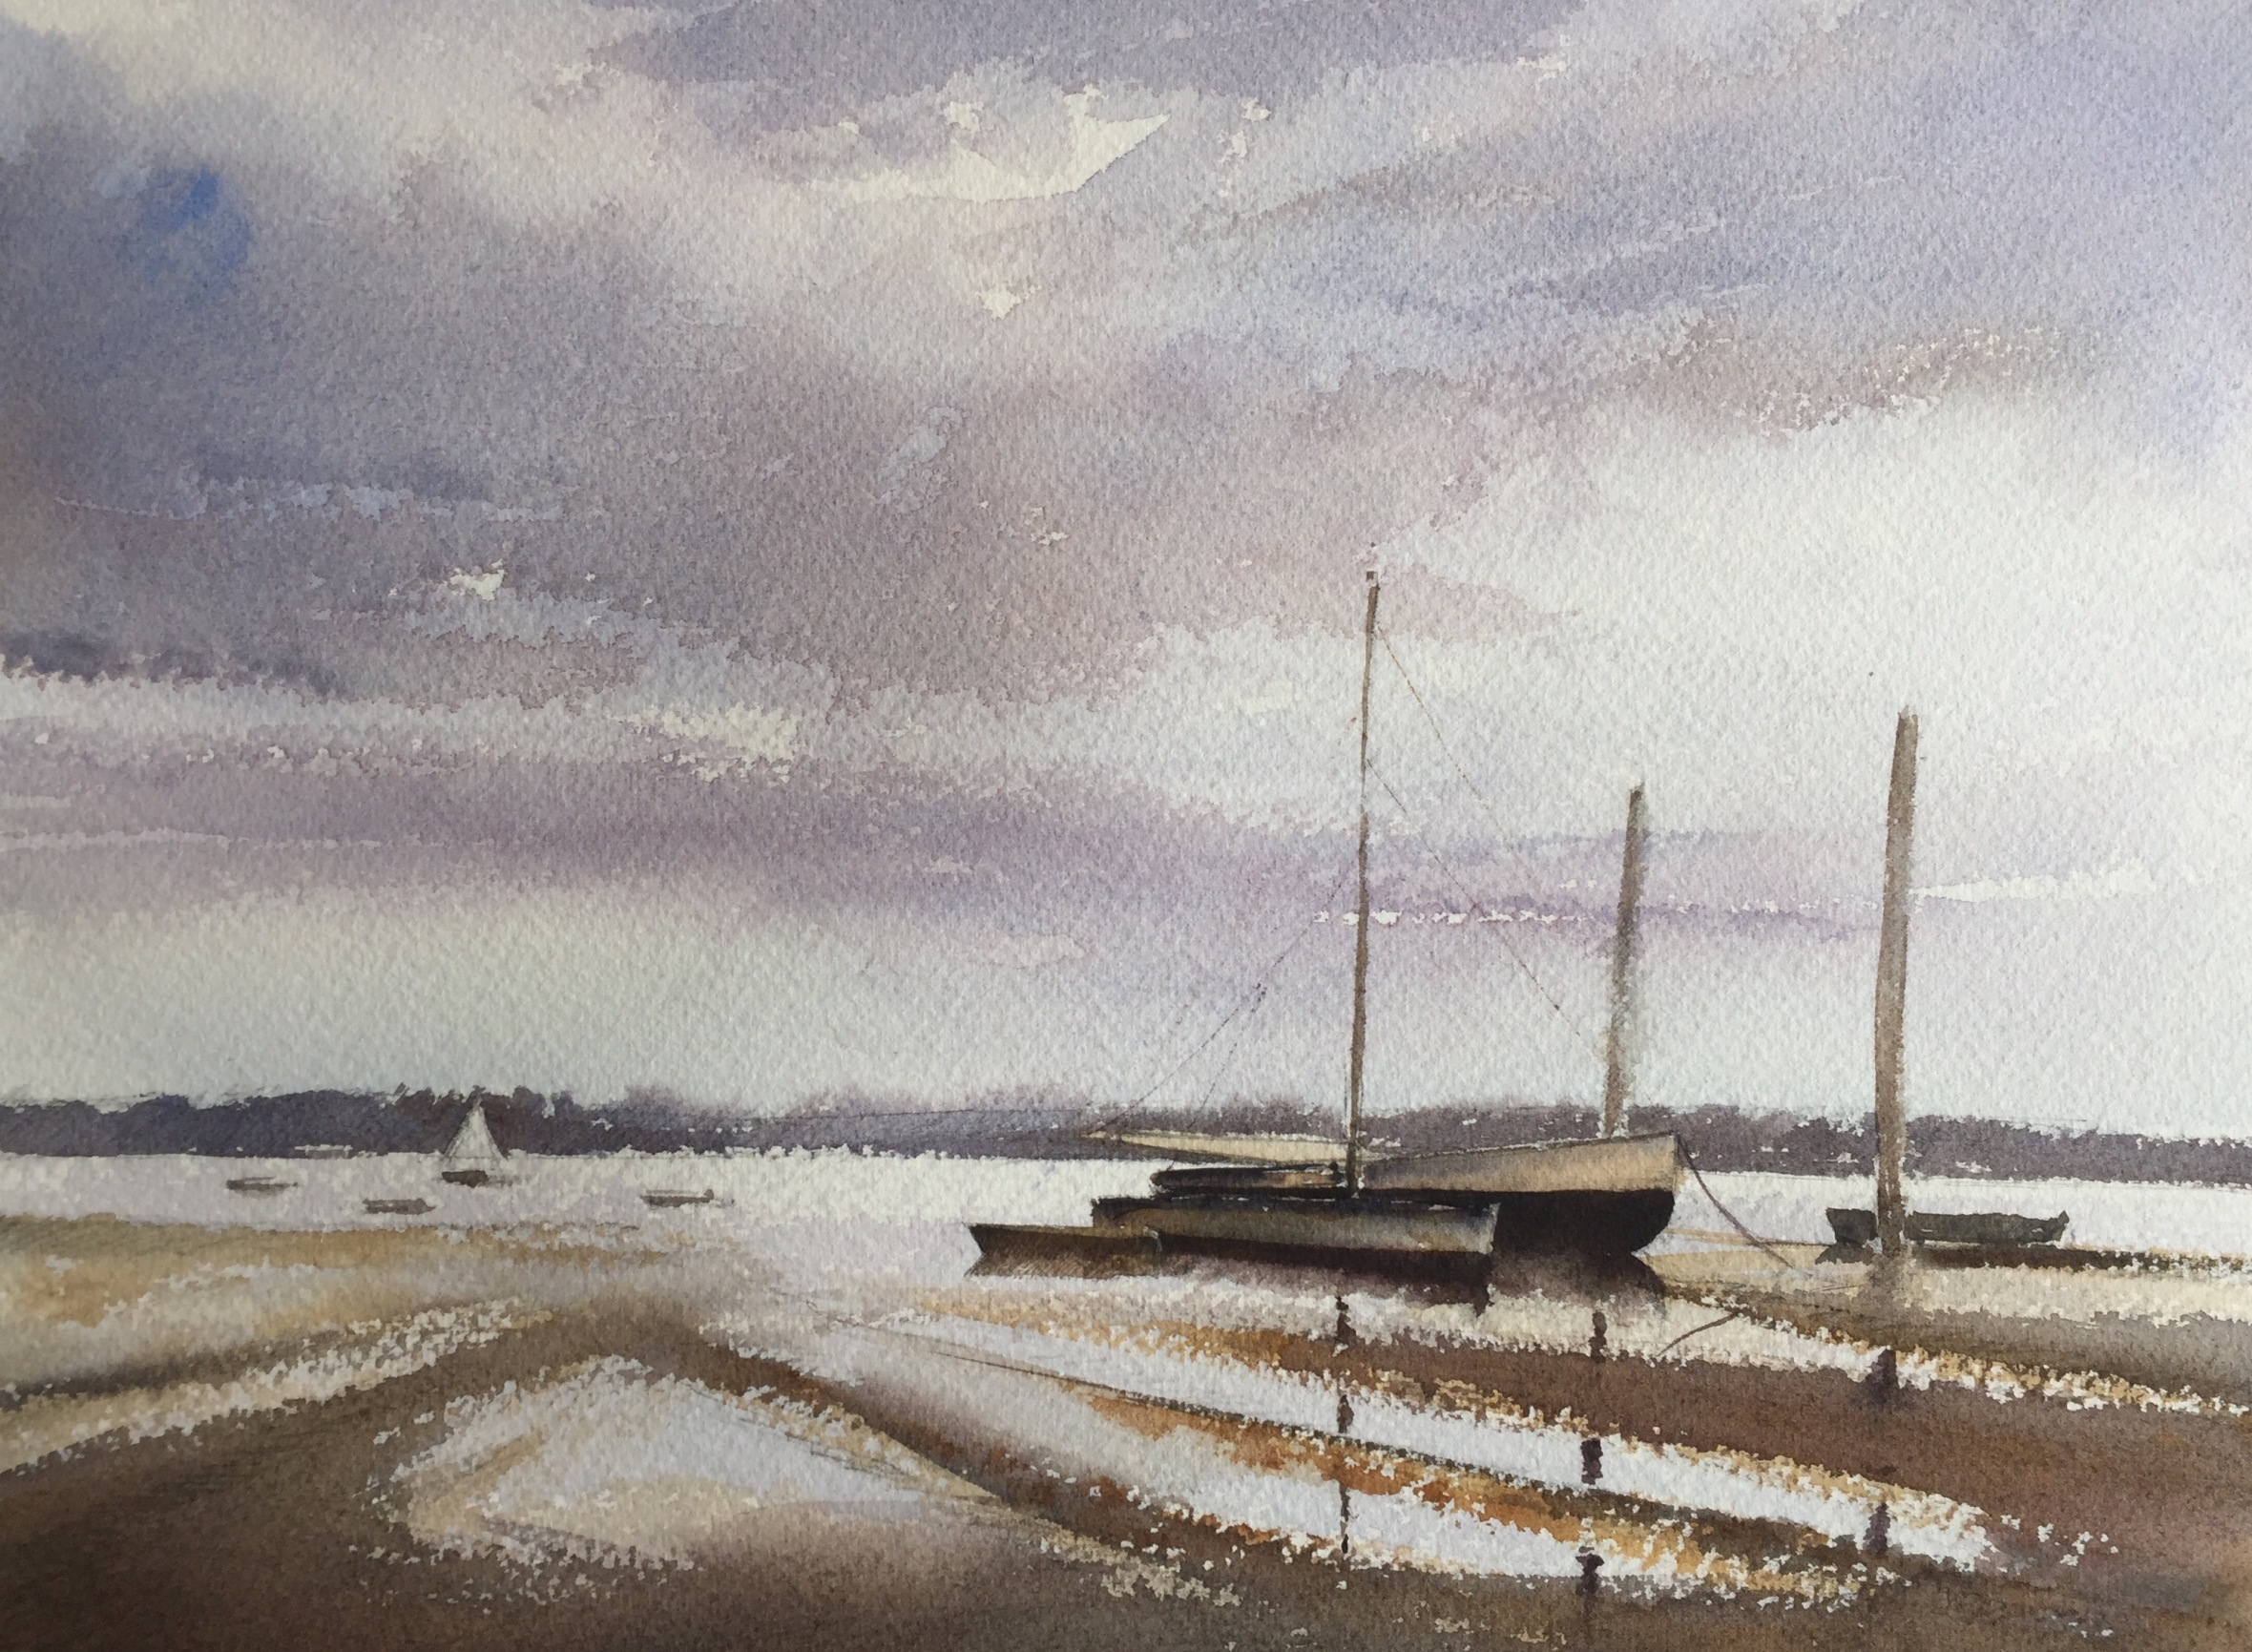 After 'End of the Hard. Pin Mill' by Edward Seago - take one...